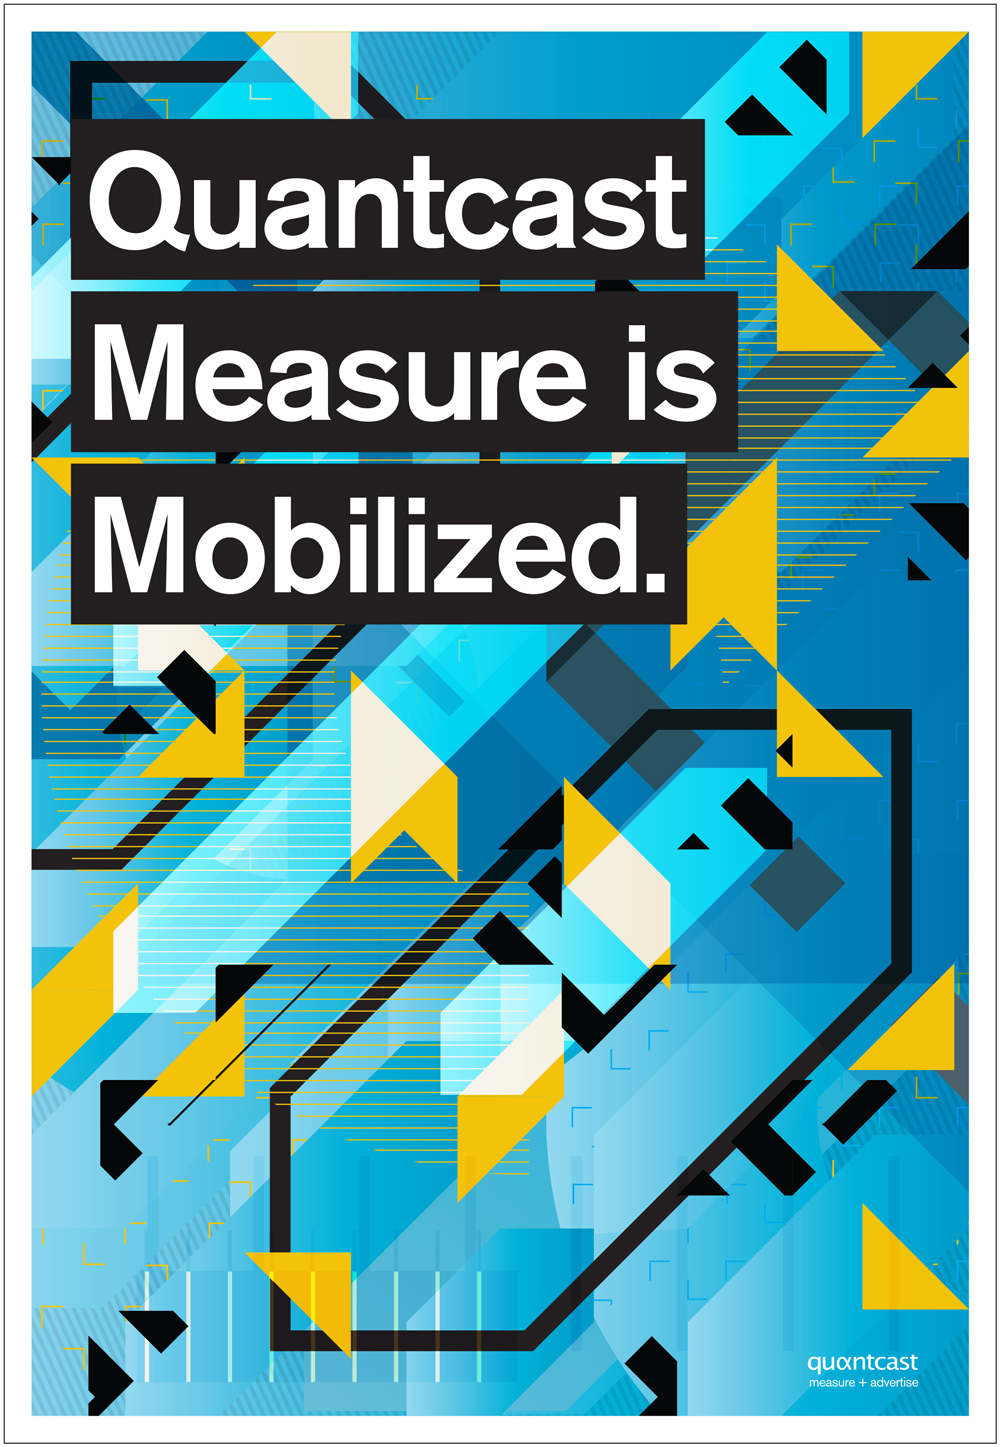 Launch materials for Quantcast Measure for Apps